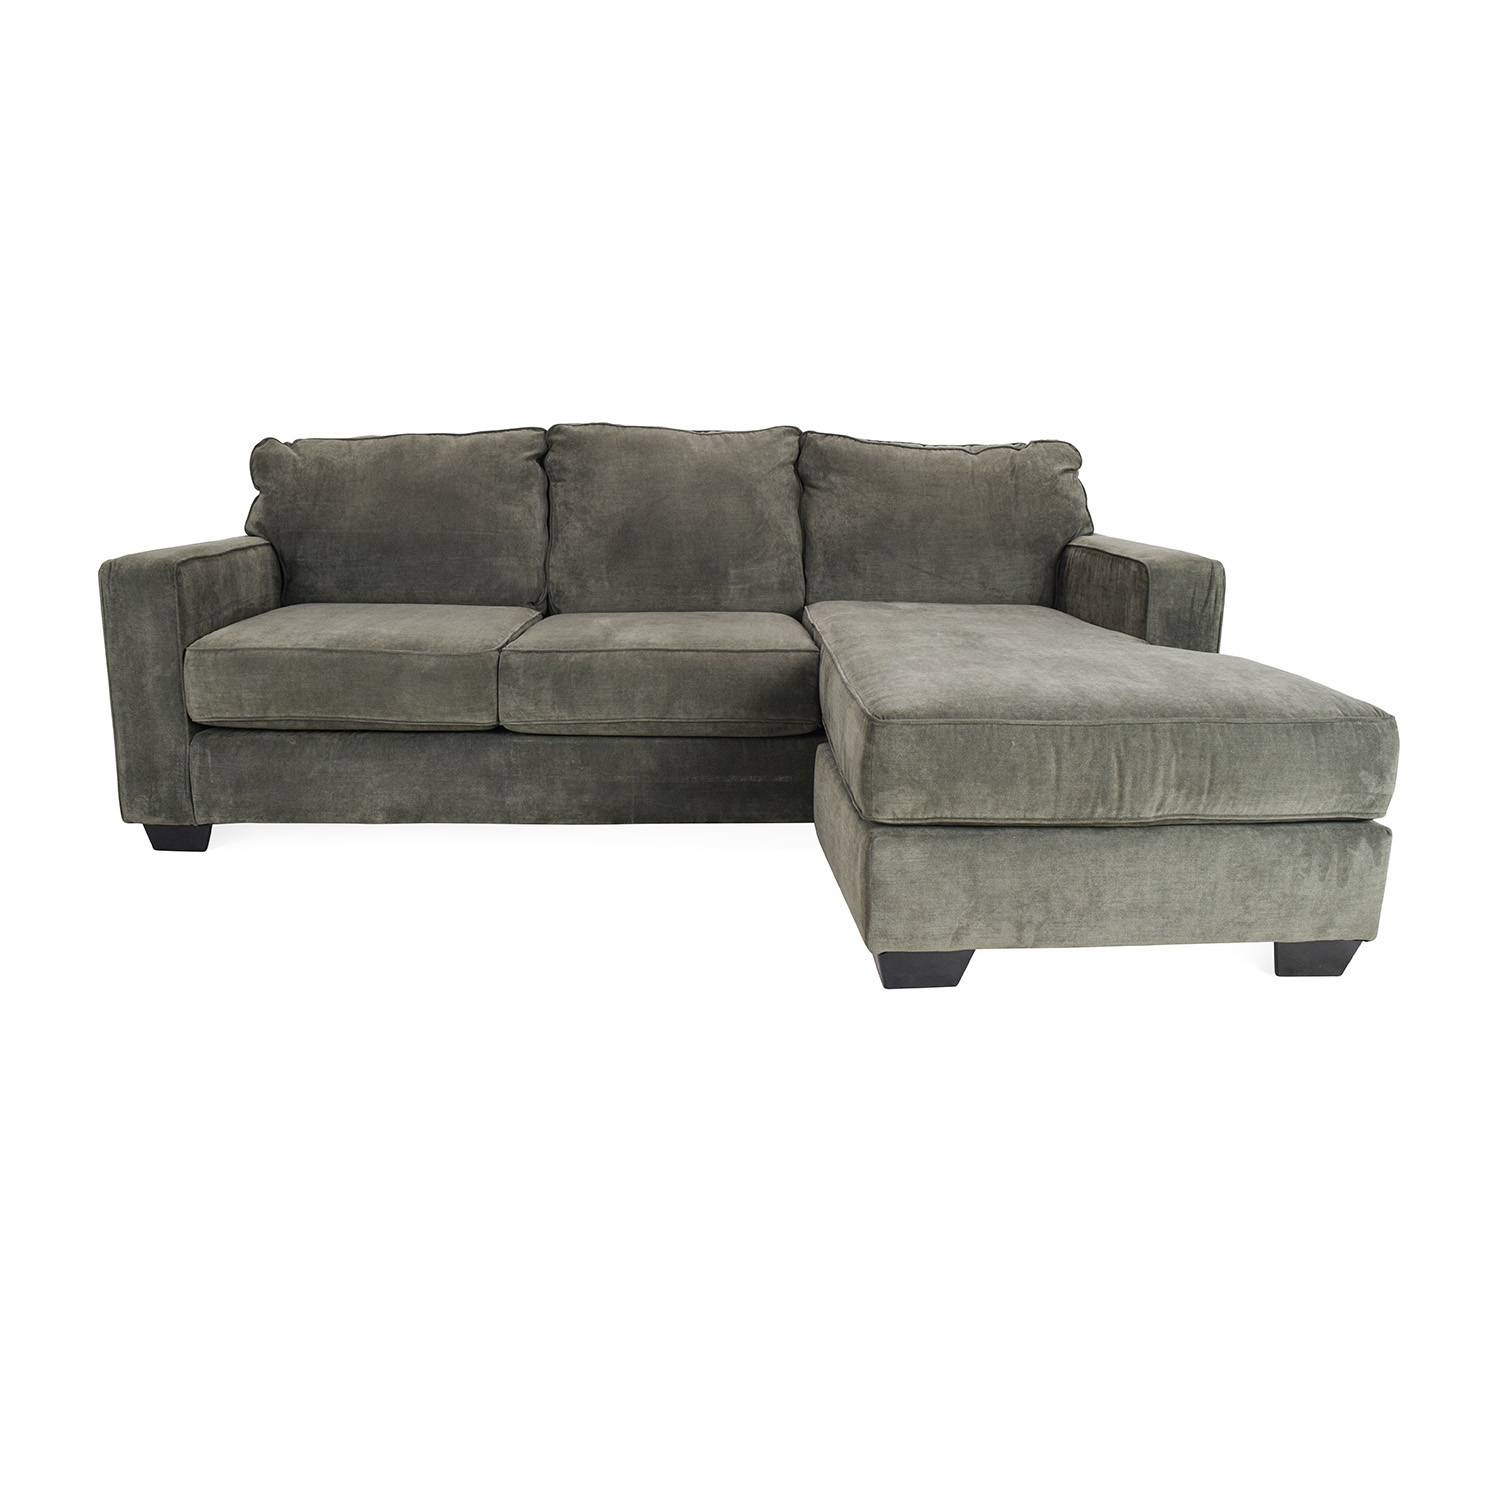 77% Off - Roche Bobois Roche Bobois Brown Leather Sectional / Sofas pertaining to Jennifer Sofas And Sectionals (Image 3 of 15)